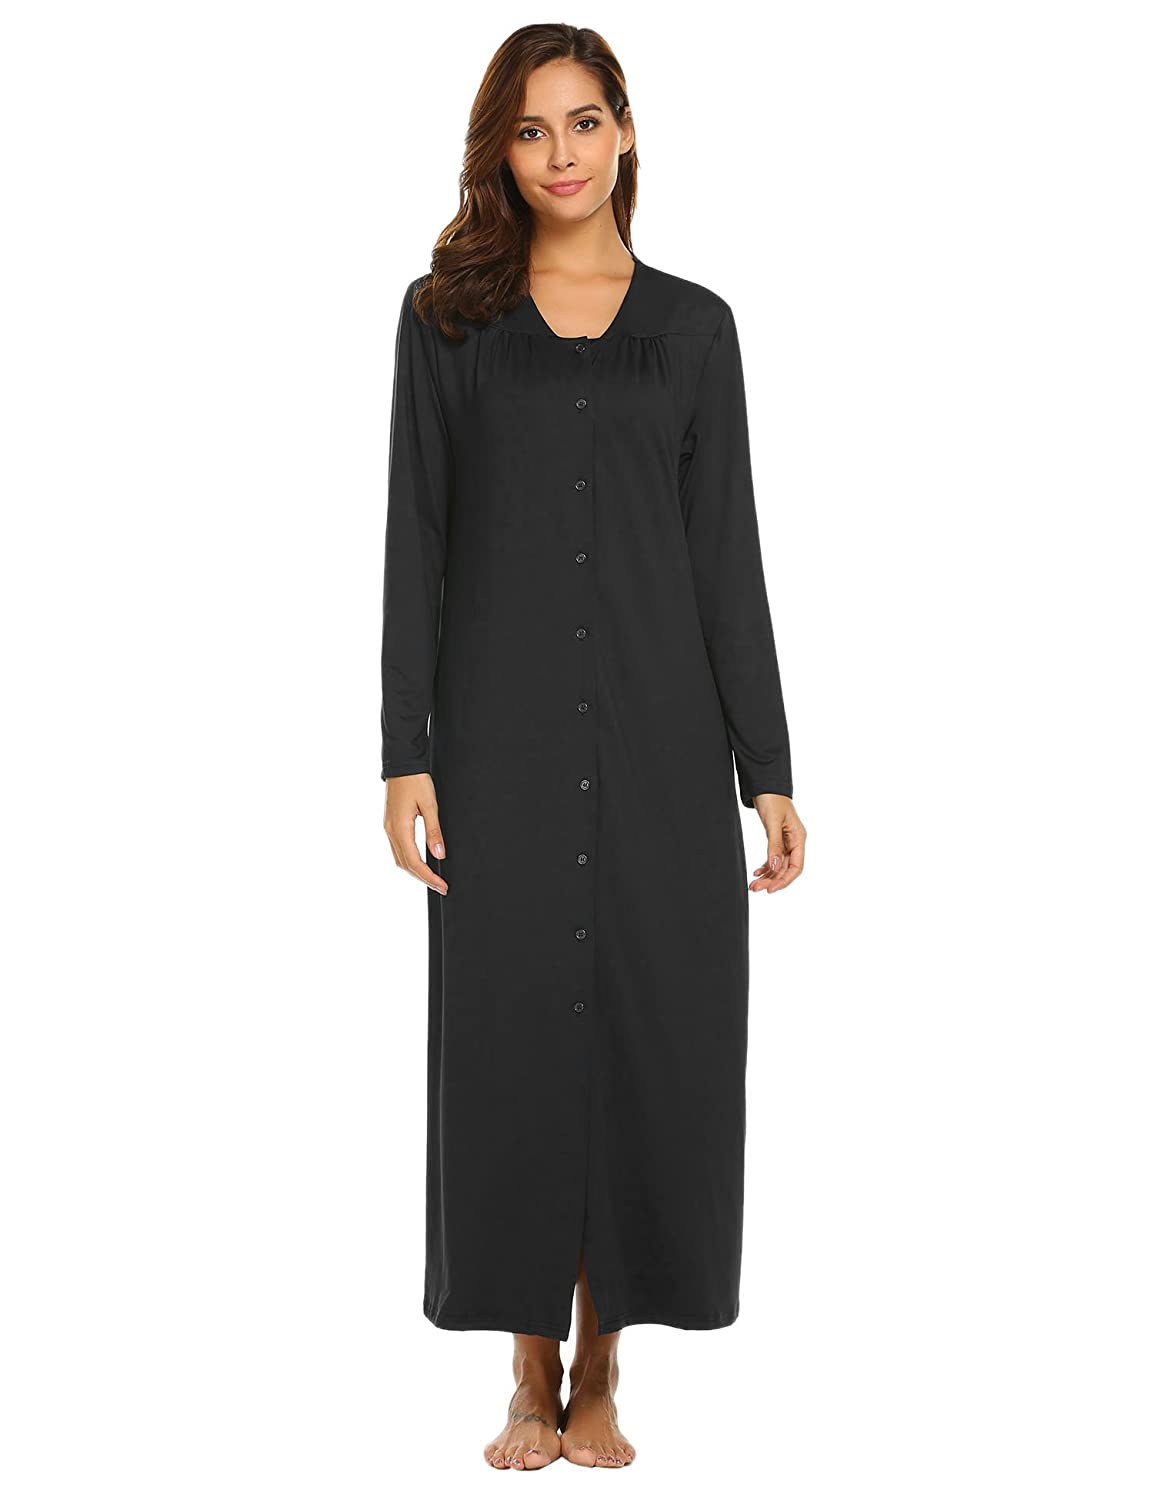 b7ac7112527 Top 10 wholesale Cotton Maxi Nightgown - Chinabrands.com